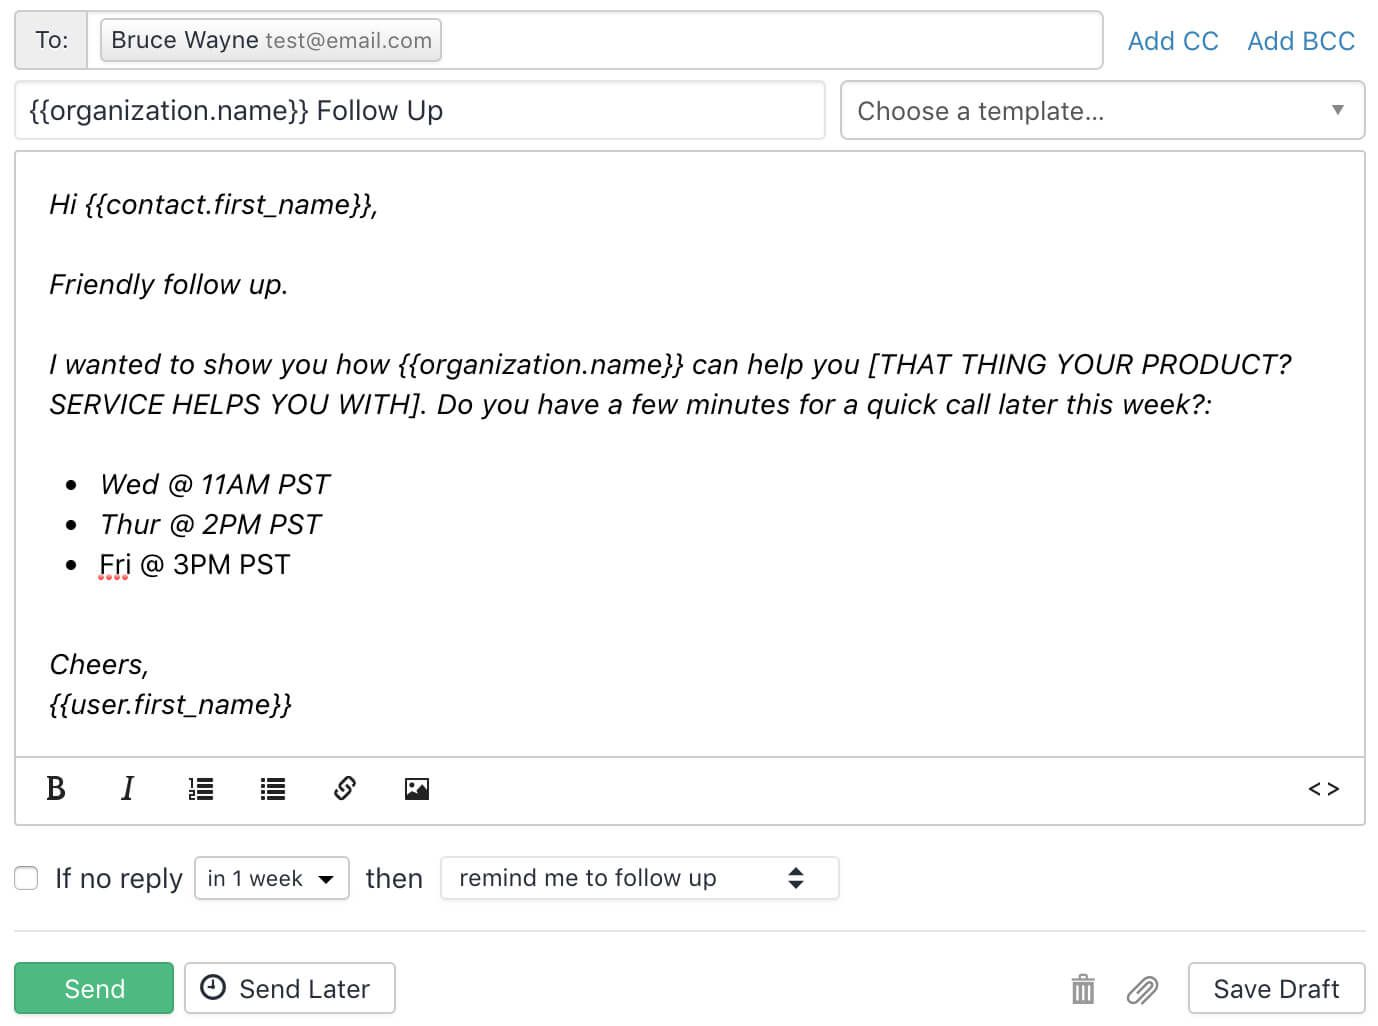 008 Unforgettable Follow Up Email Template After No Response Sample Full